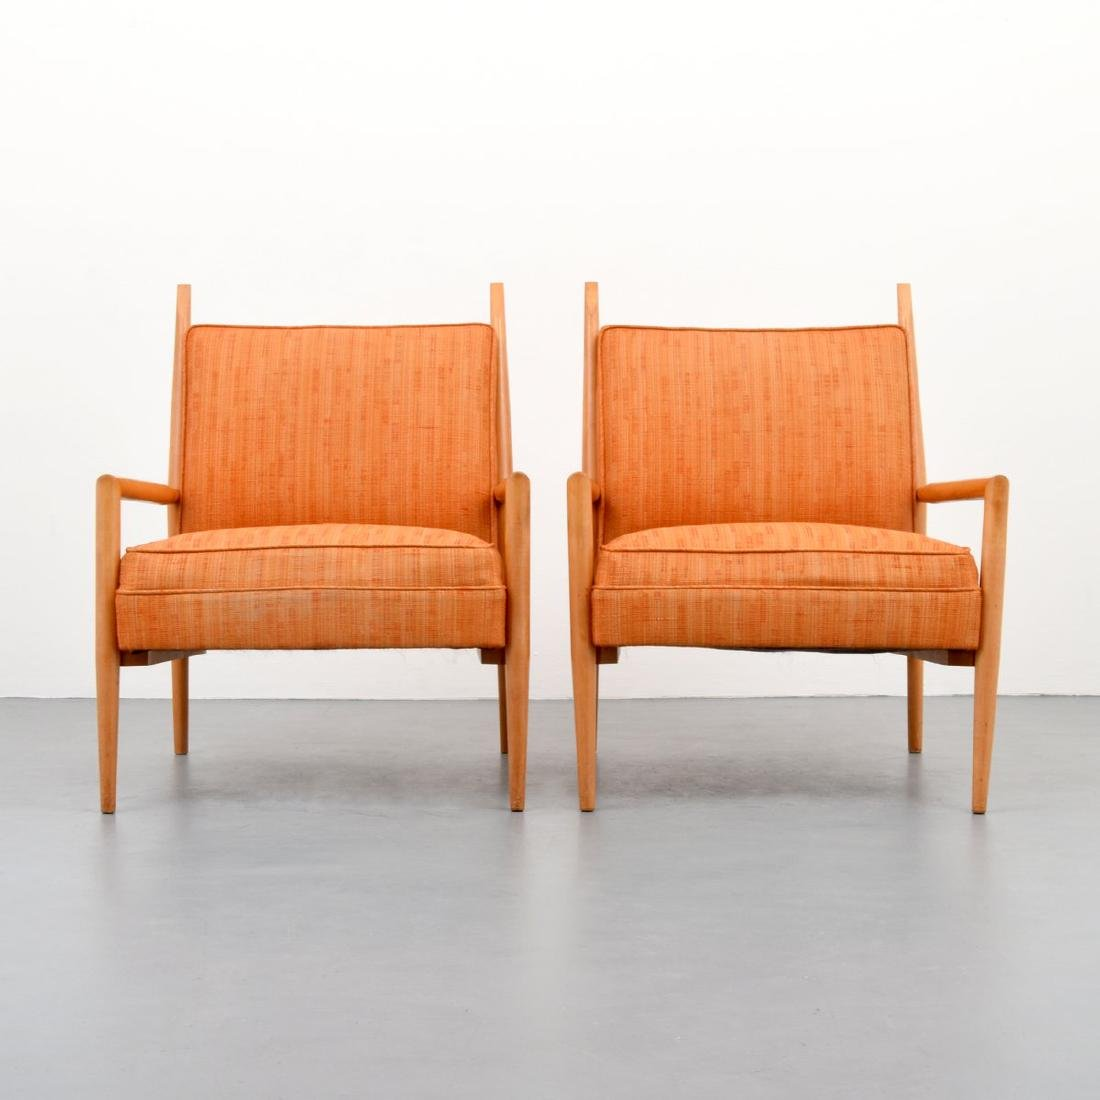 Pair of Paul McCobb Lounge Chairs - 2